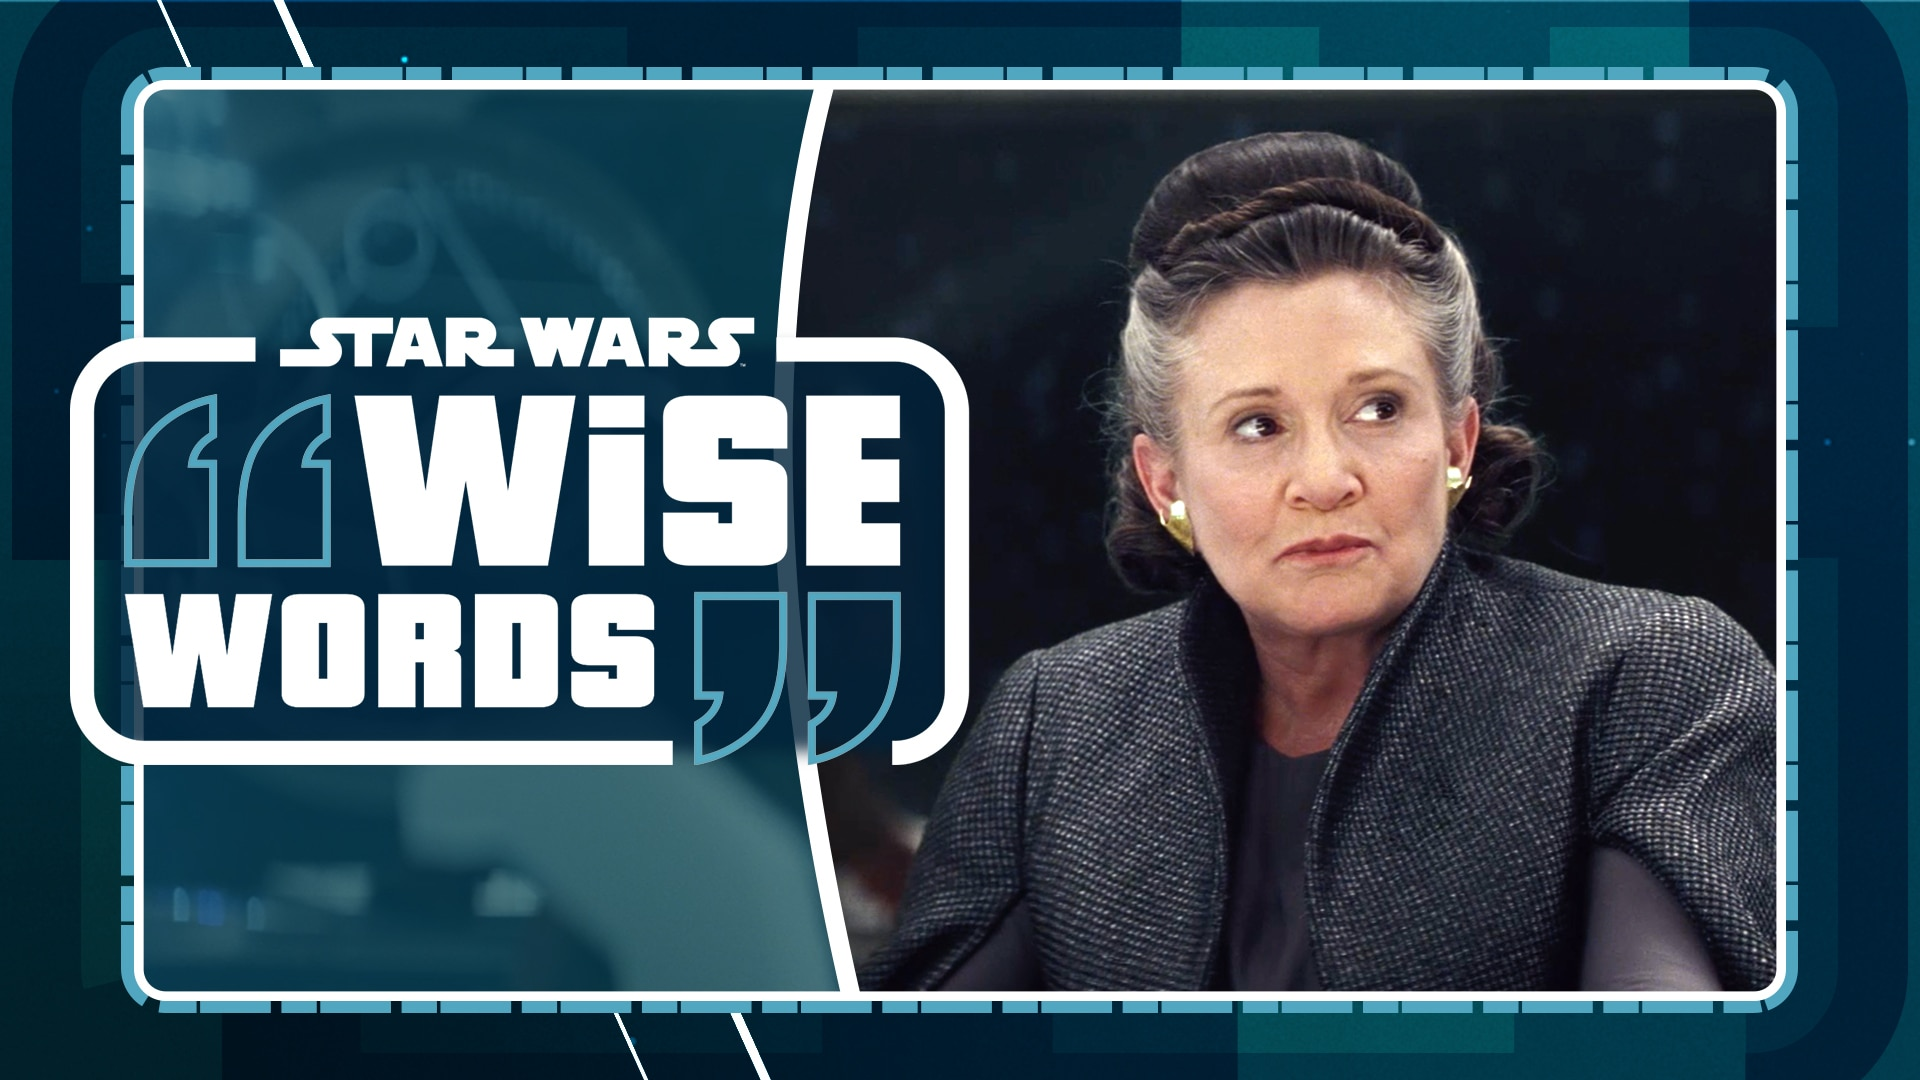 General Leia Organa | Star Wars Wise Words